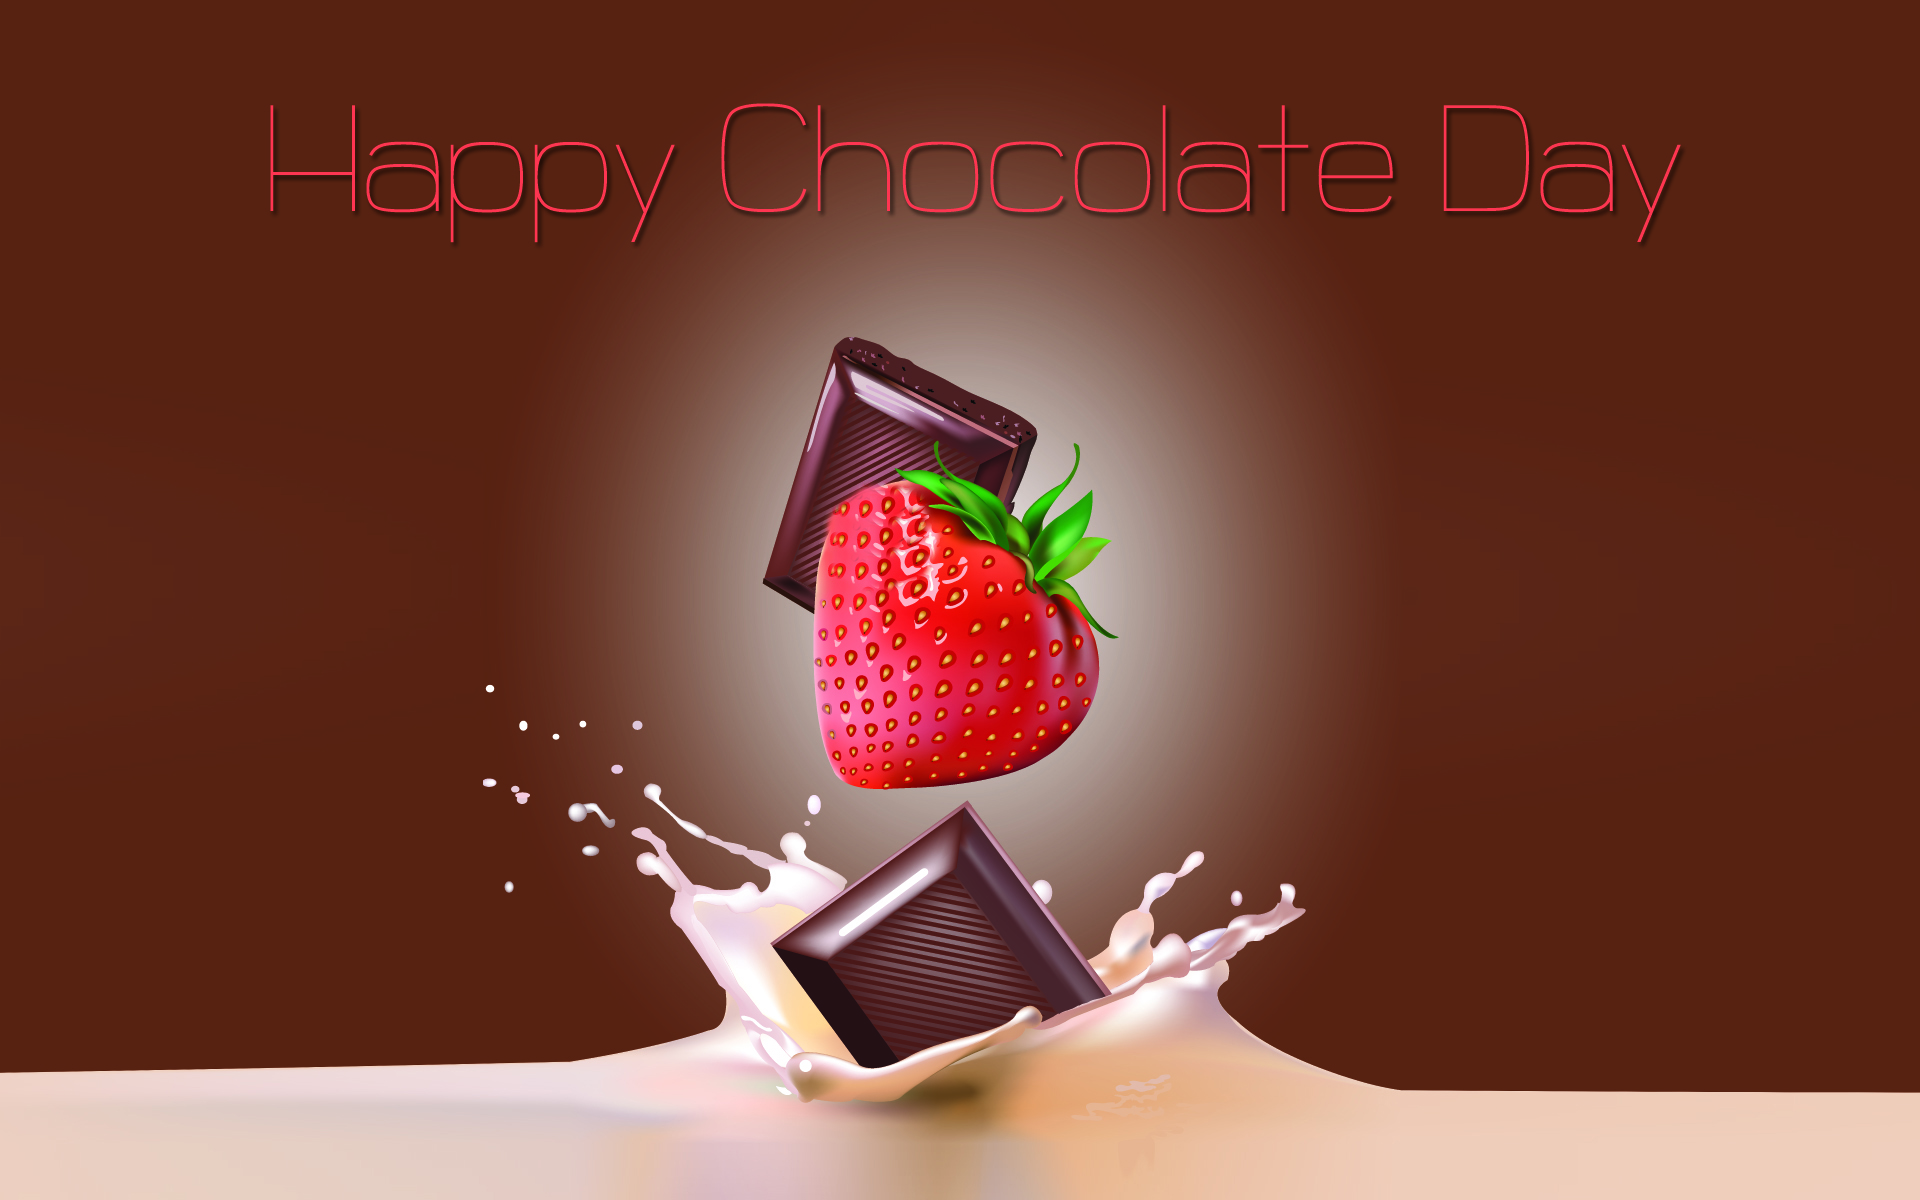 Chocolate Day Desktop Wallpaper 12565   Baltana 1920x1200